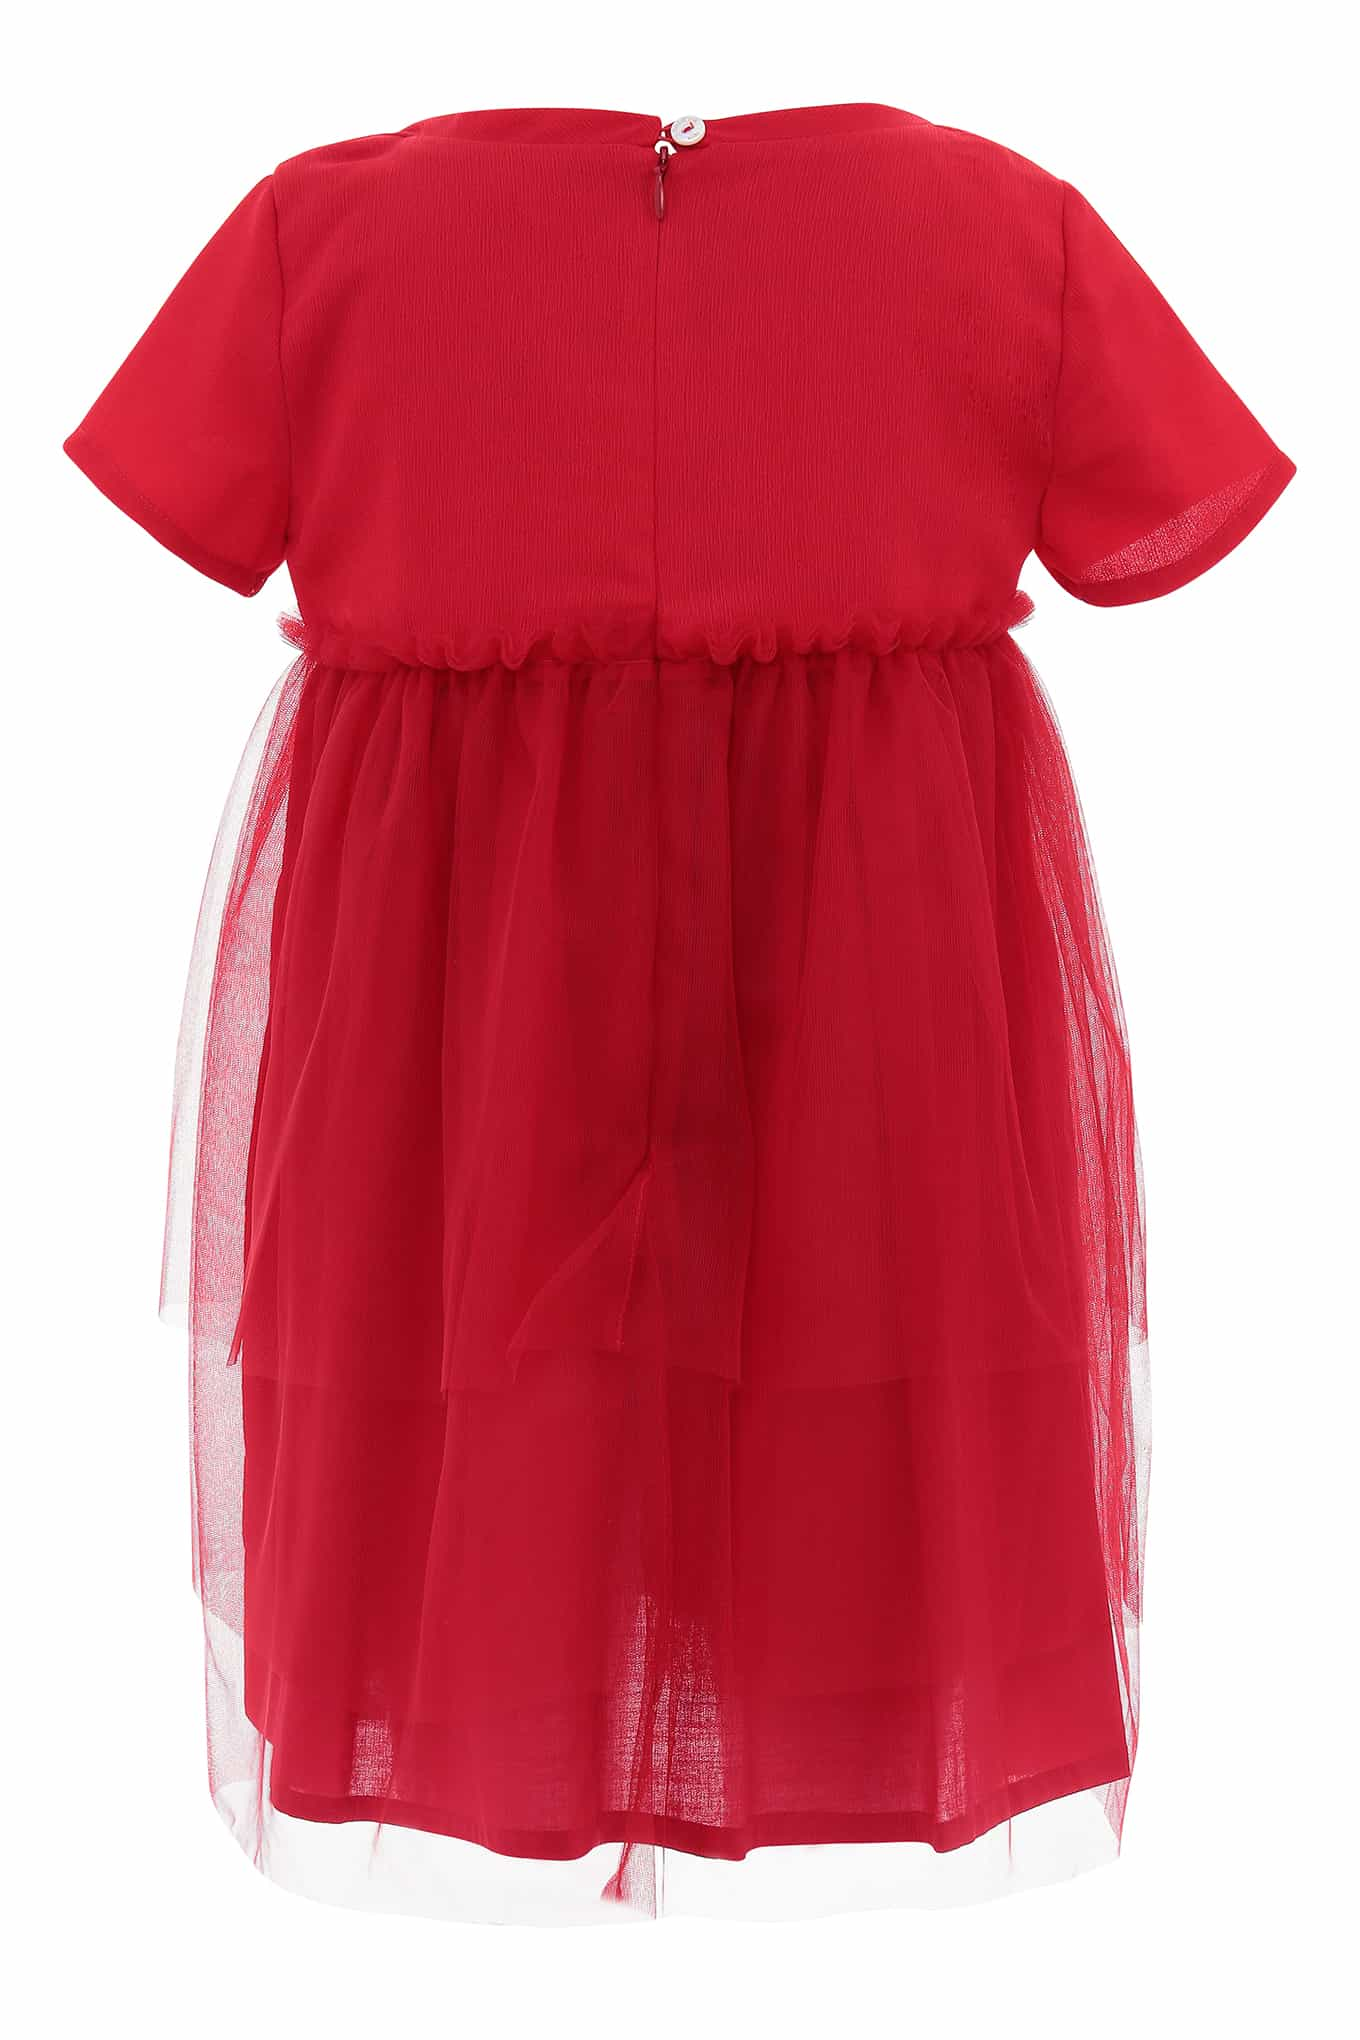 Dress Red Casual Girl